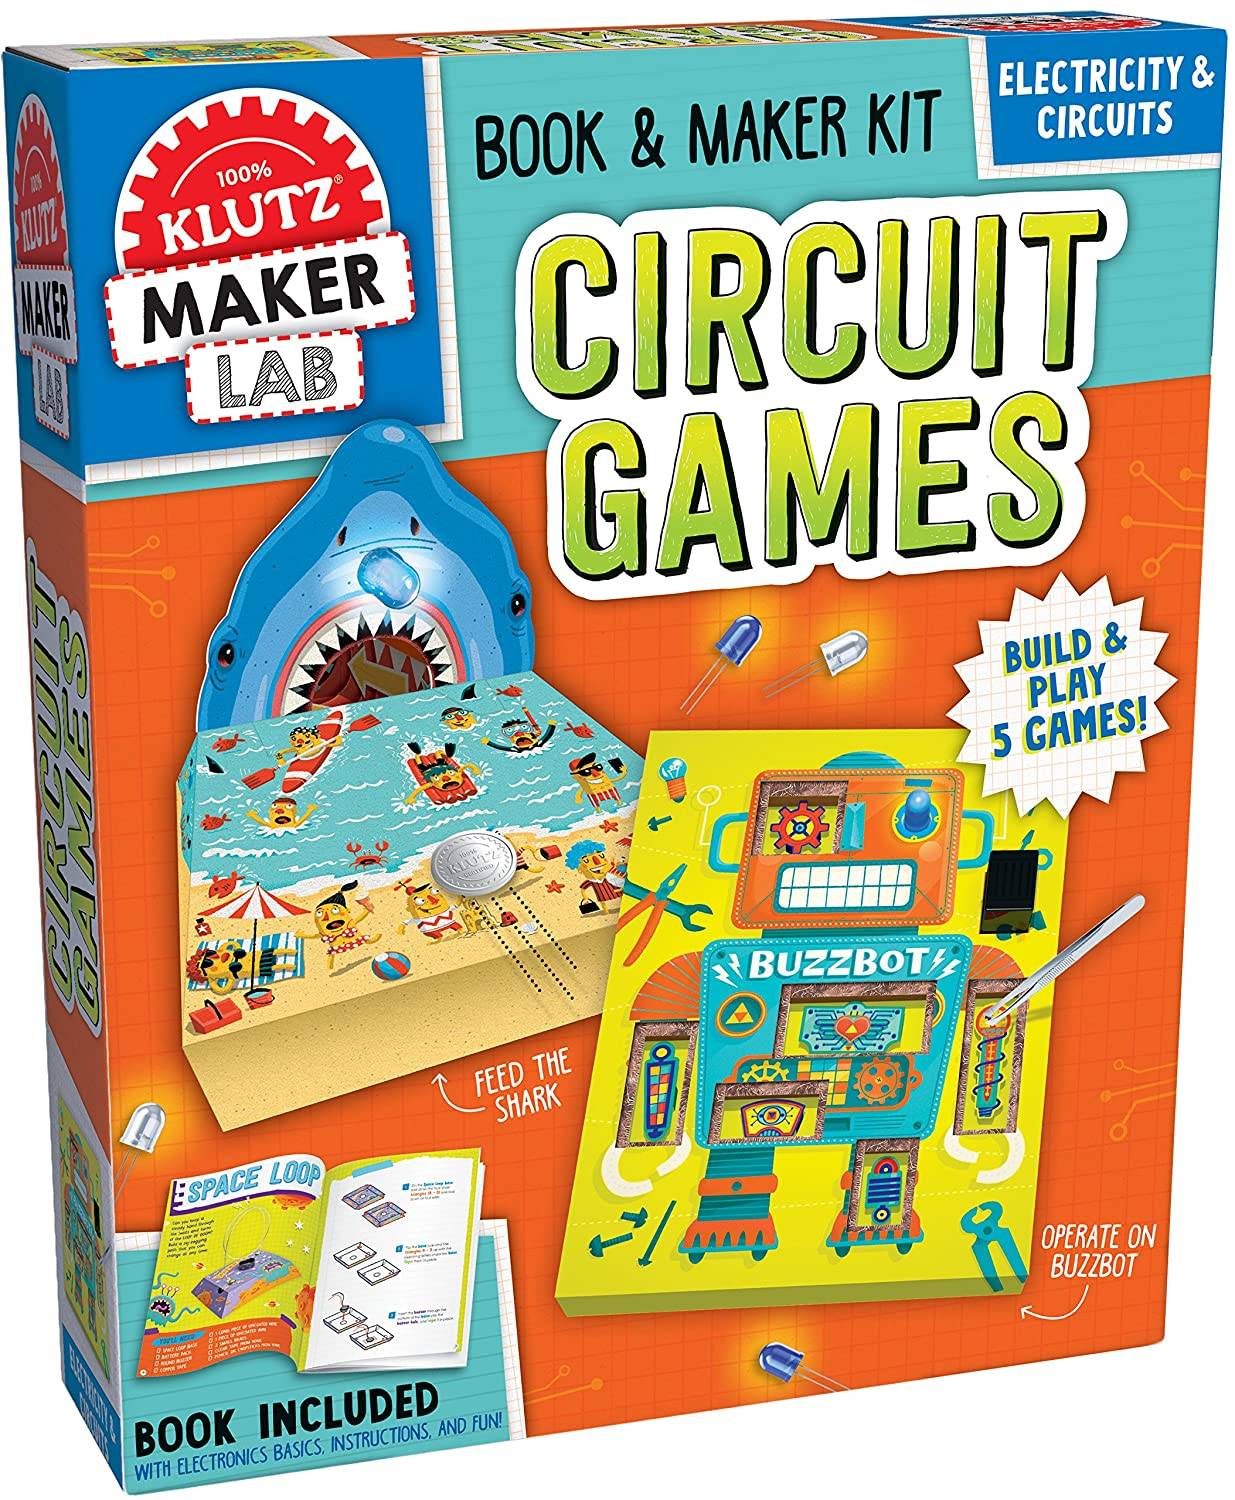 Klutz Maker Lab Circuit Kit Toys Games Boards Like Magic Appears